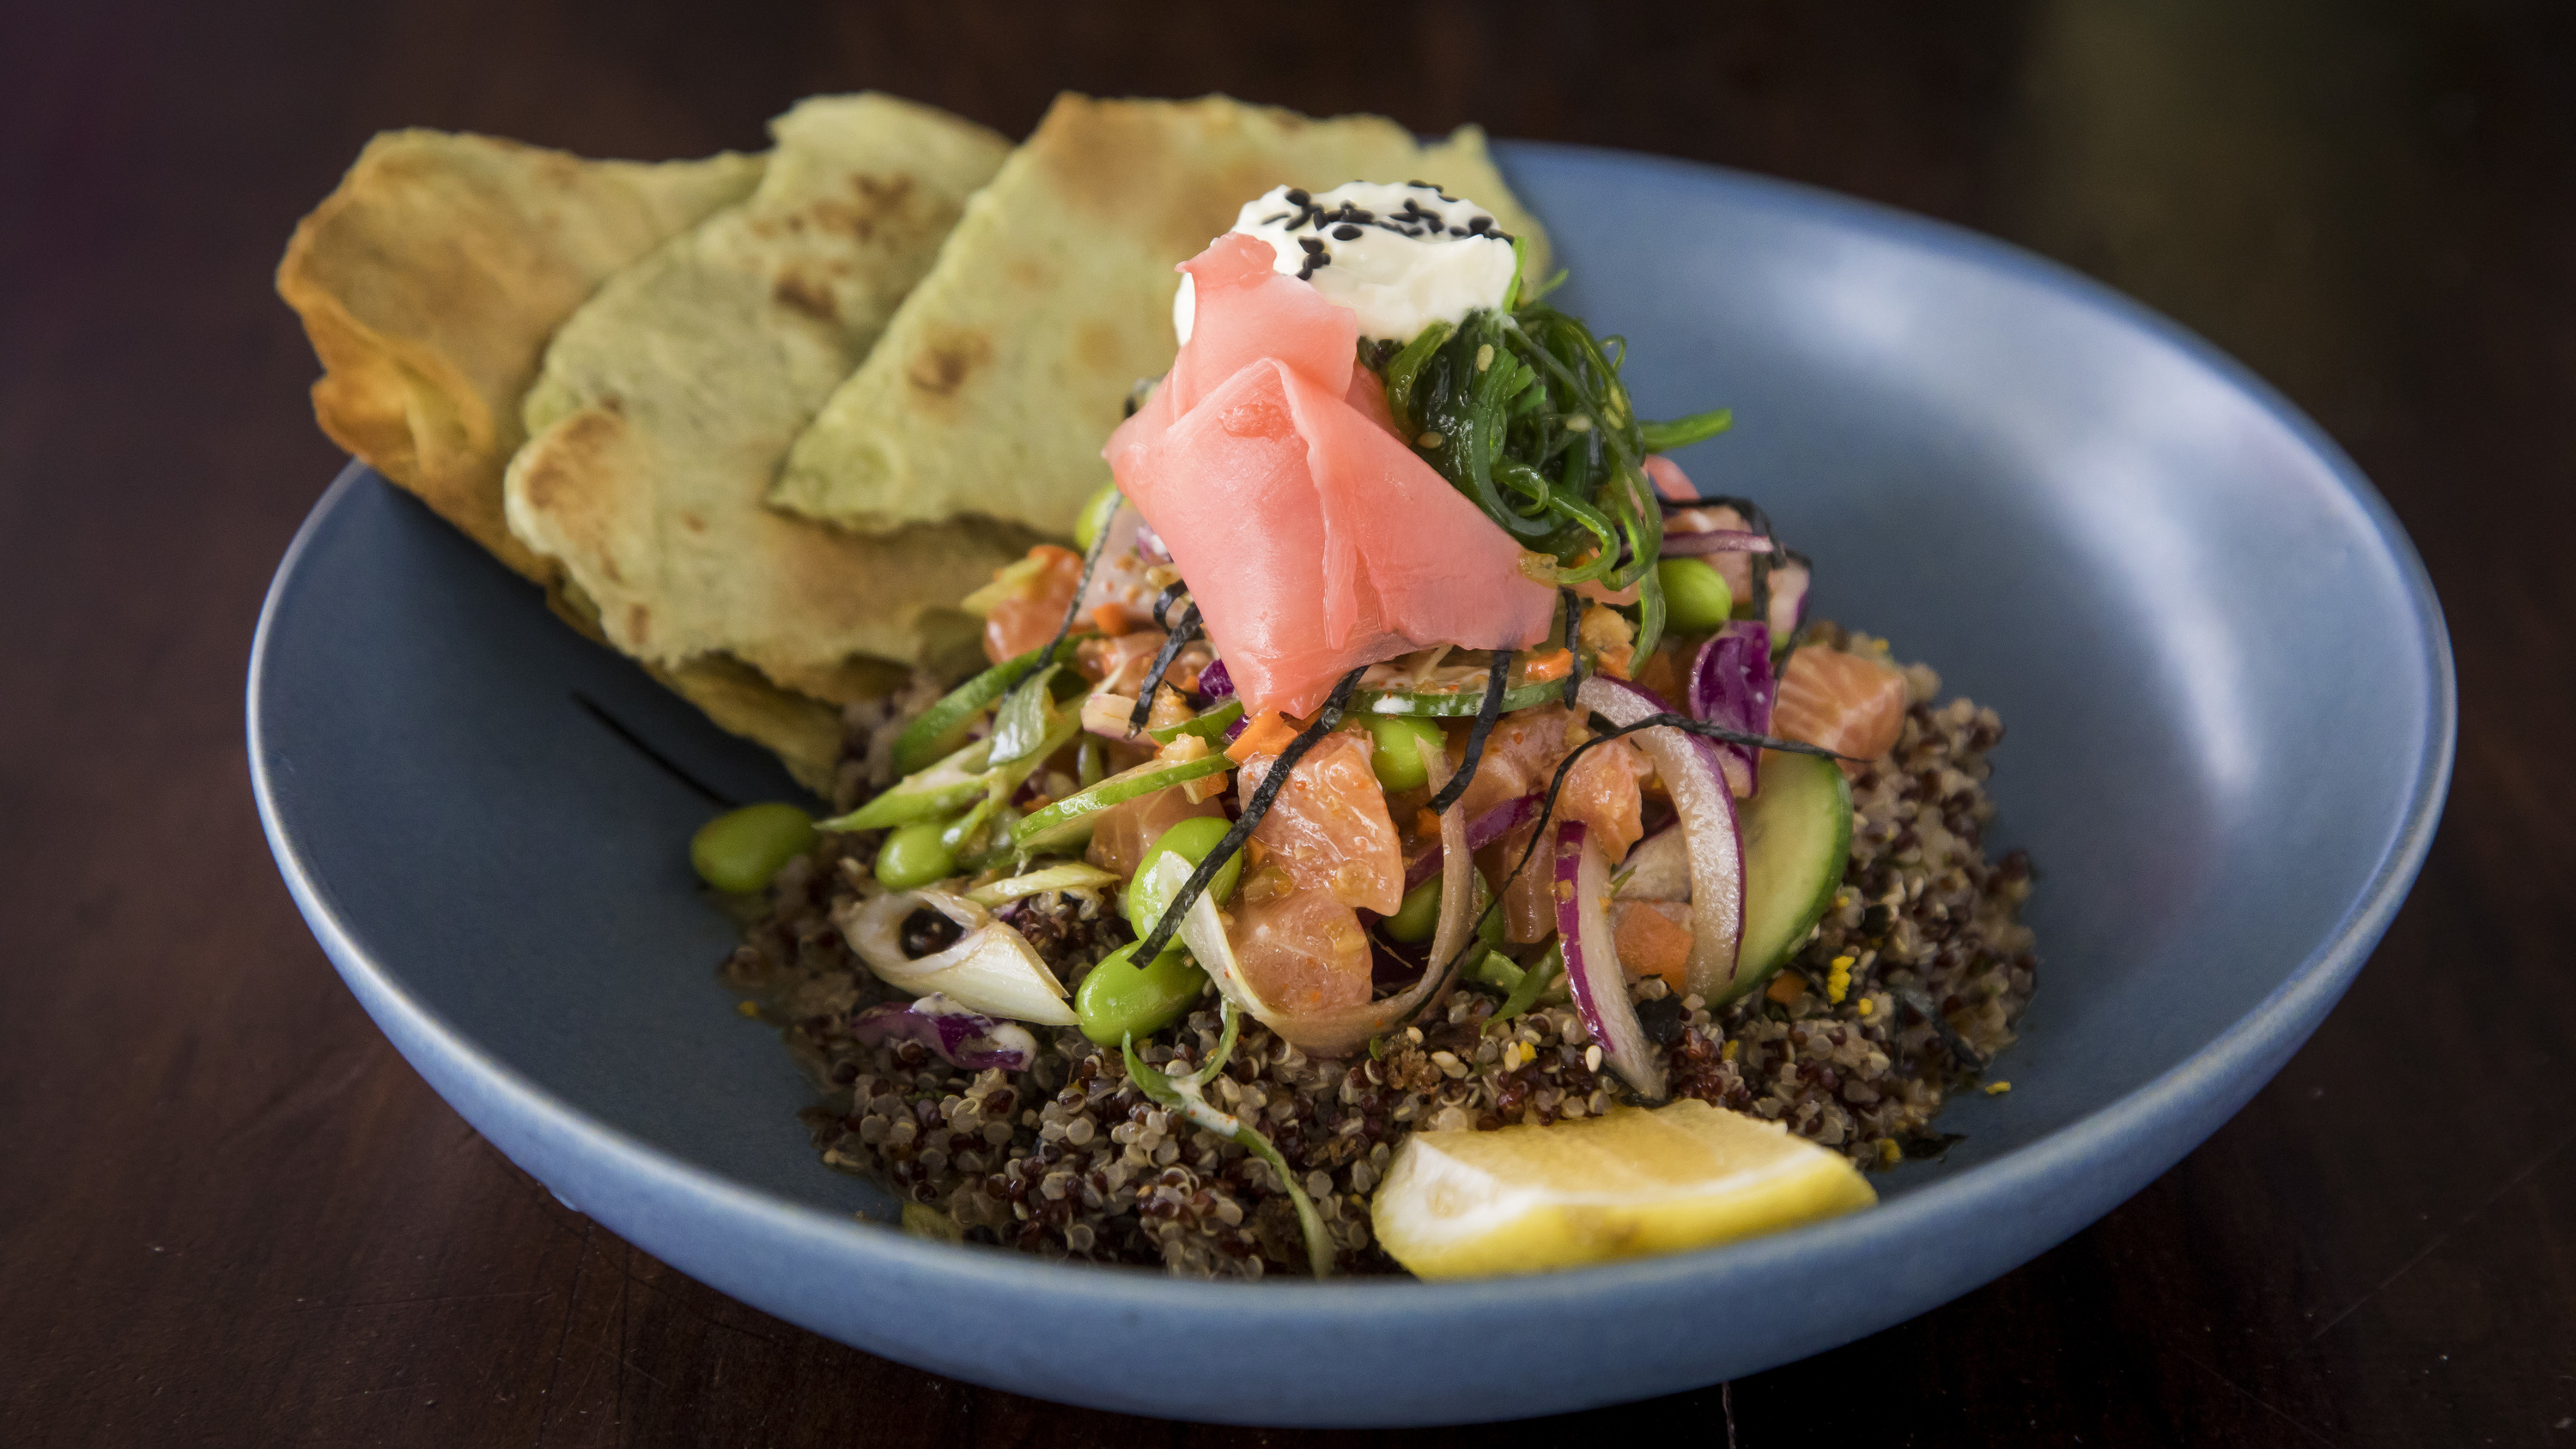 Salmon poke bowl at Vida Surf Store